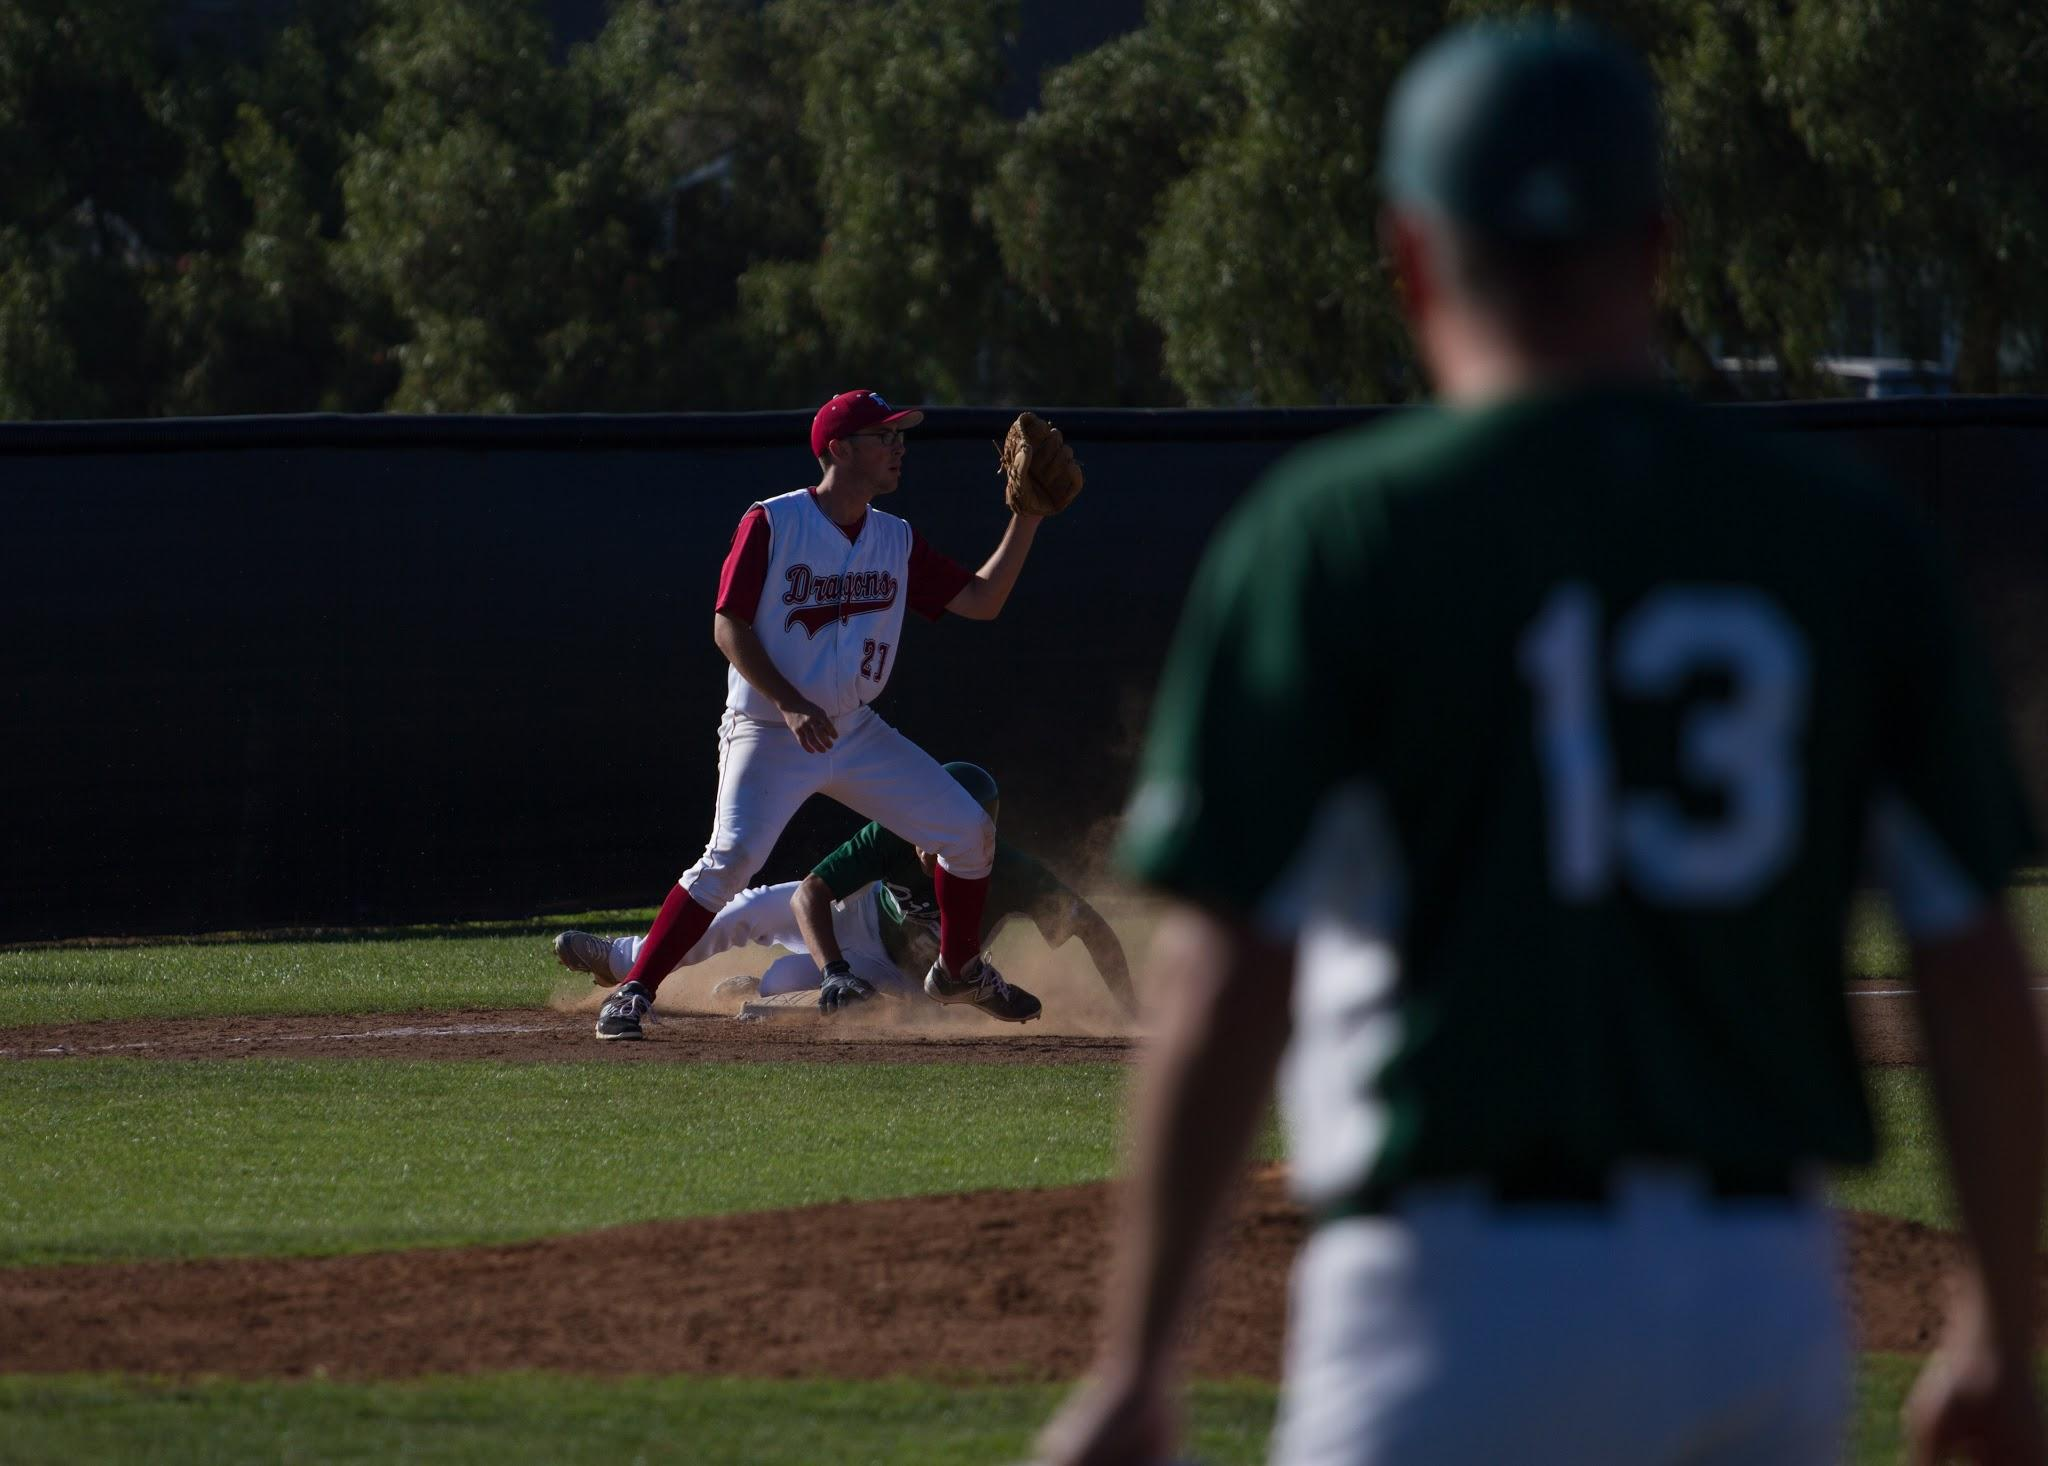 Junior Alex Beamer attempts to get the opposing player out at third base. Credit: Austin Hunt/ The Foothill Dragon Press